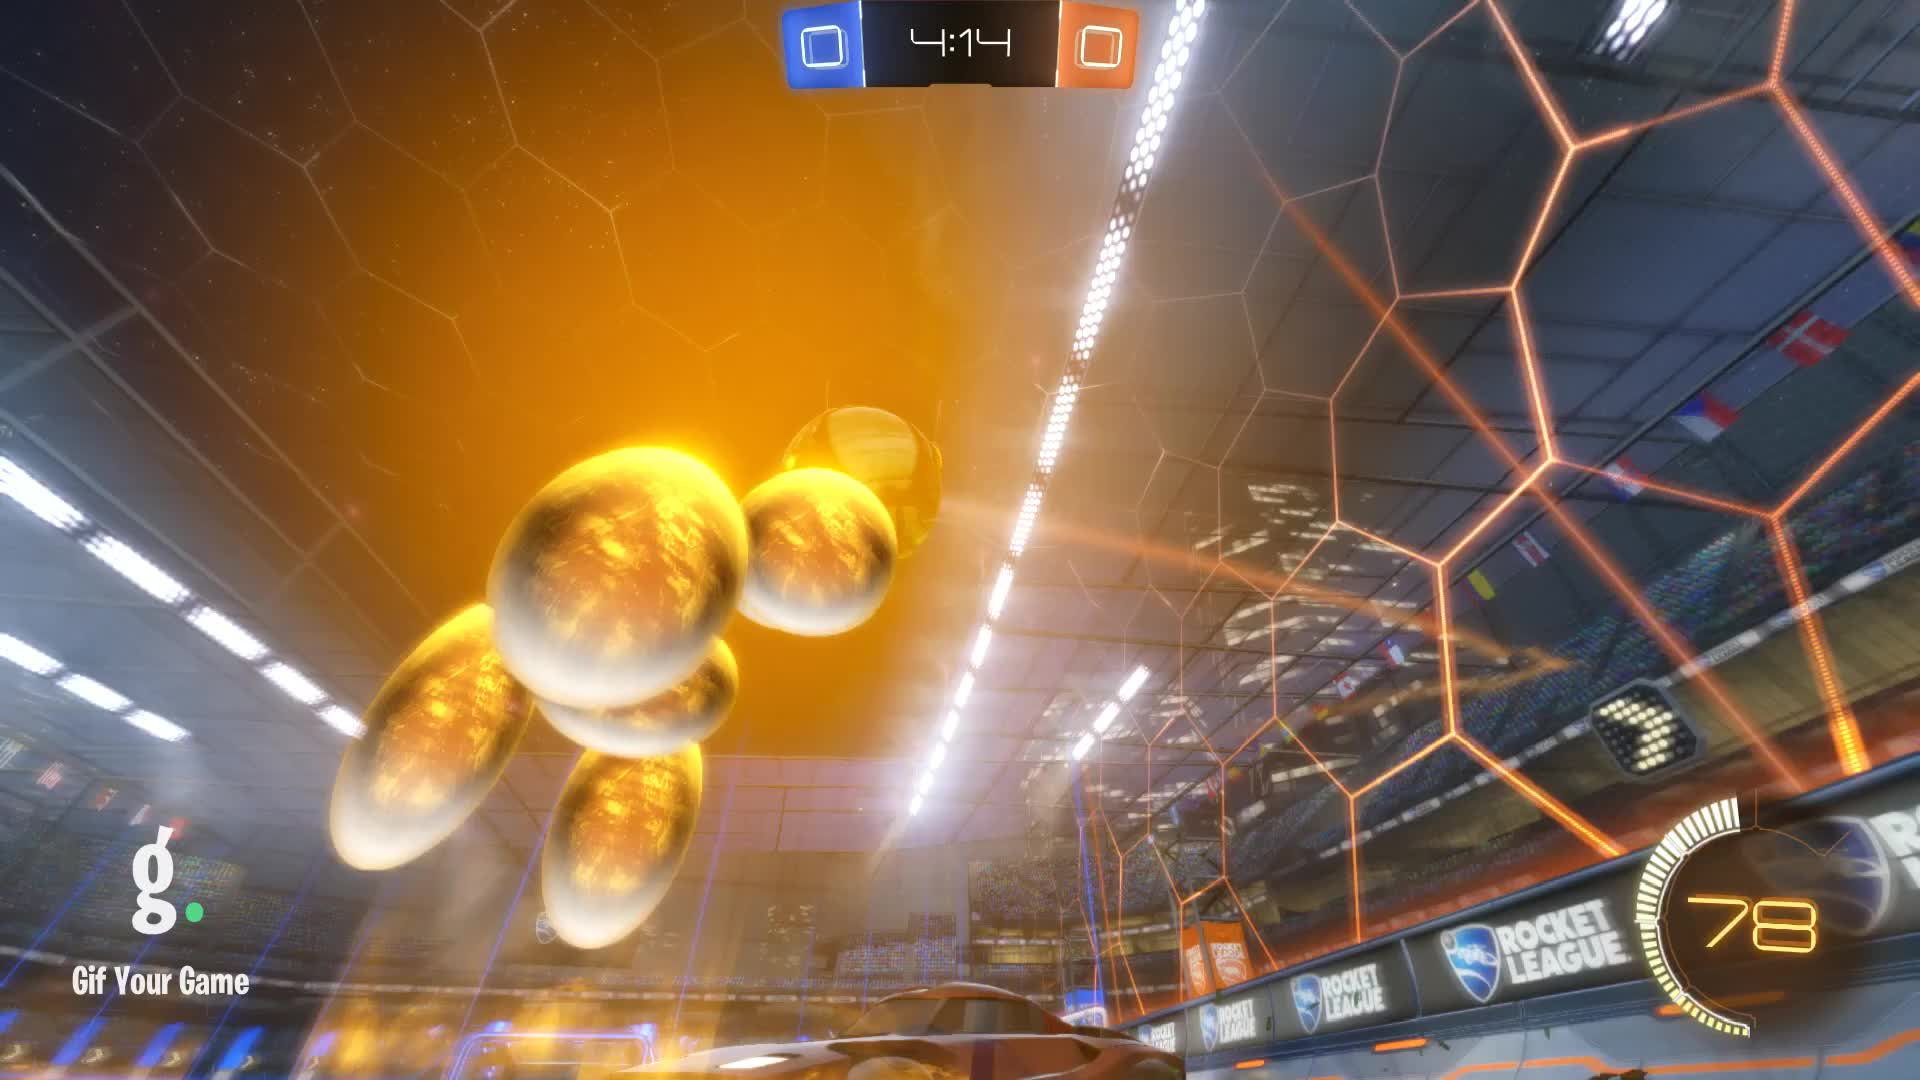 Gif Your Game, GifYourGame, Goal, Rocket League, RocketLeague, boiifyoudont | tv.vv2018, Goal 1: boiifyoudont | tv.vv2018 GIFs